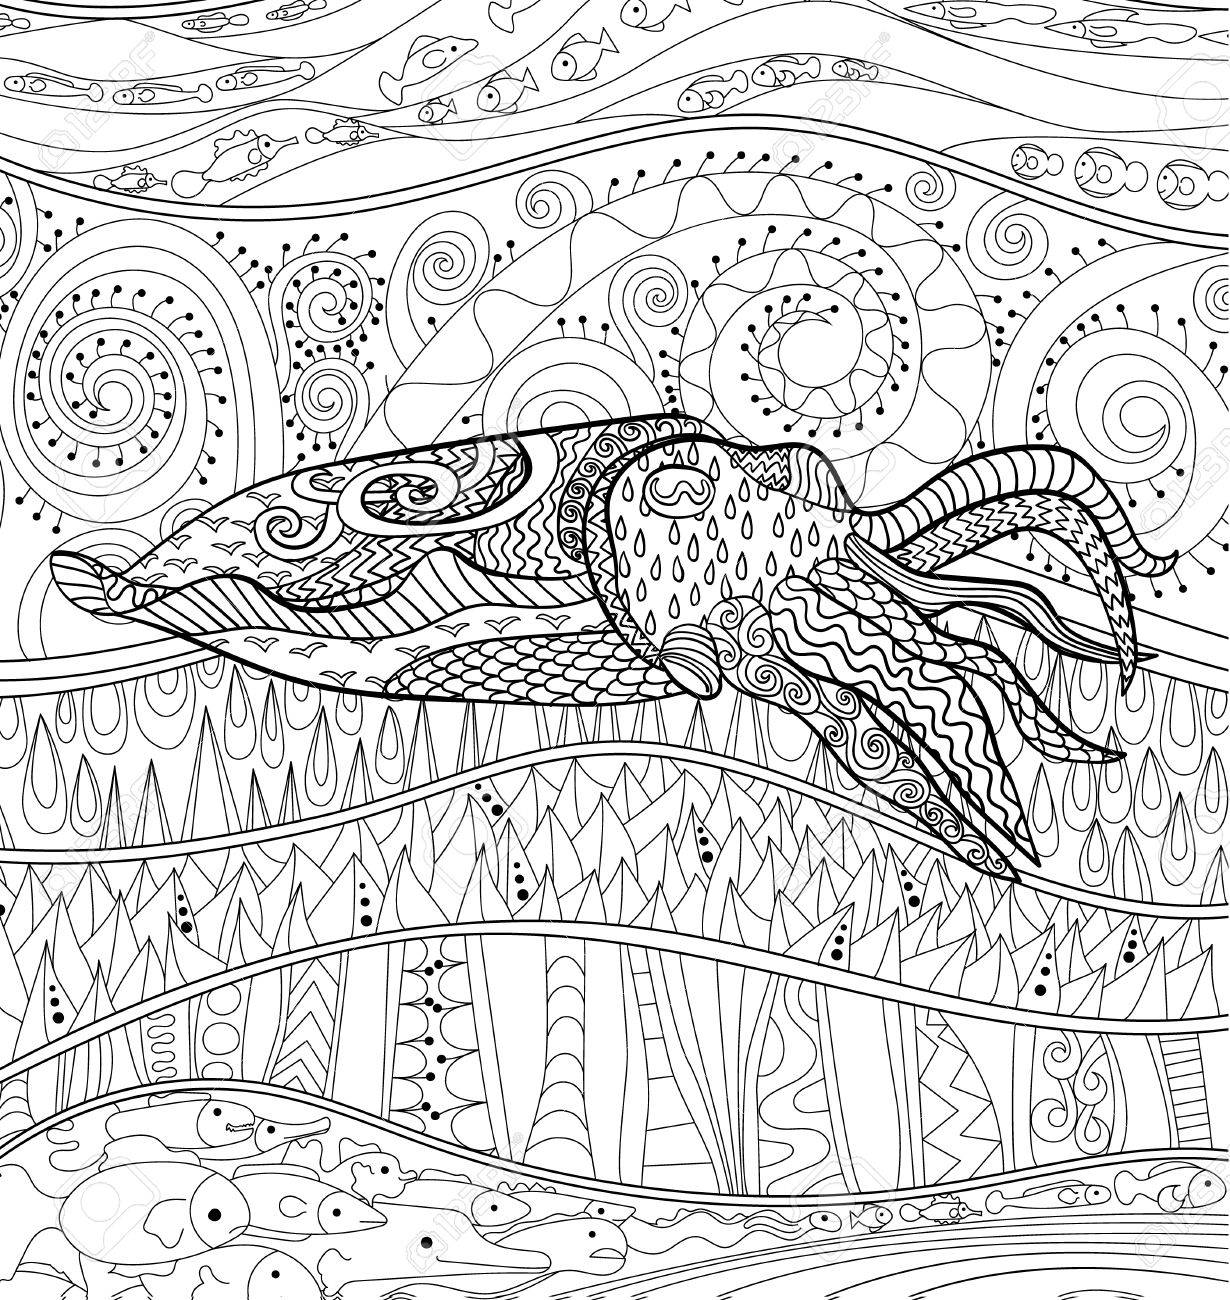 Cuttlefish With High Details Adult Antistress Coloring Page Black White Mollusk For Art Therapy